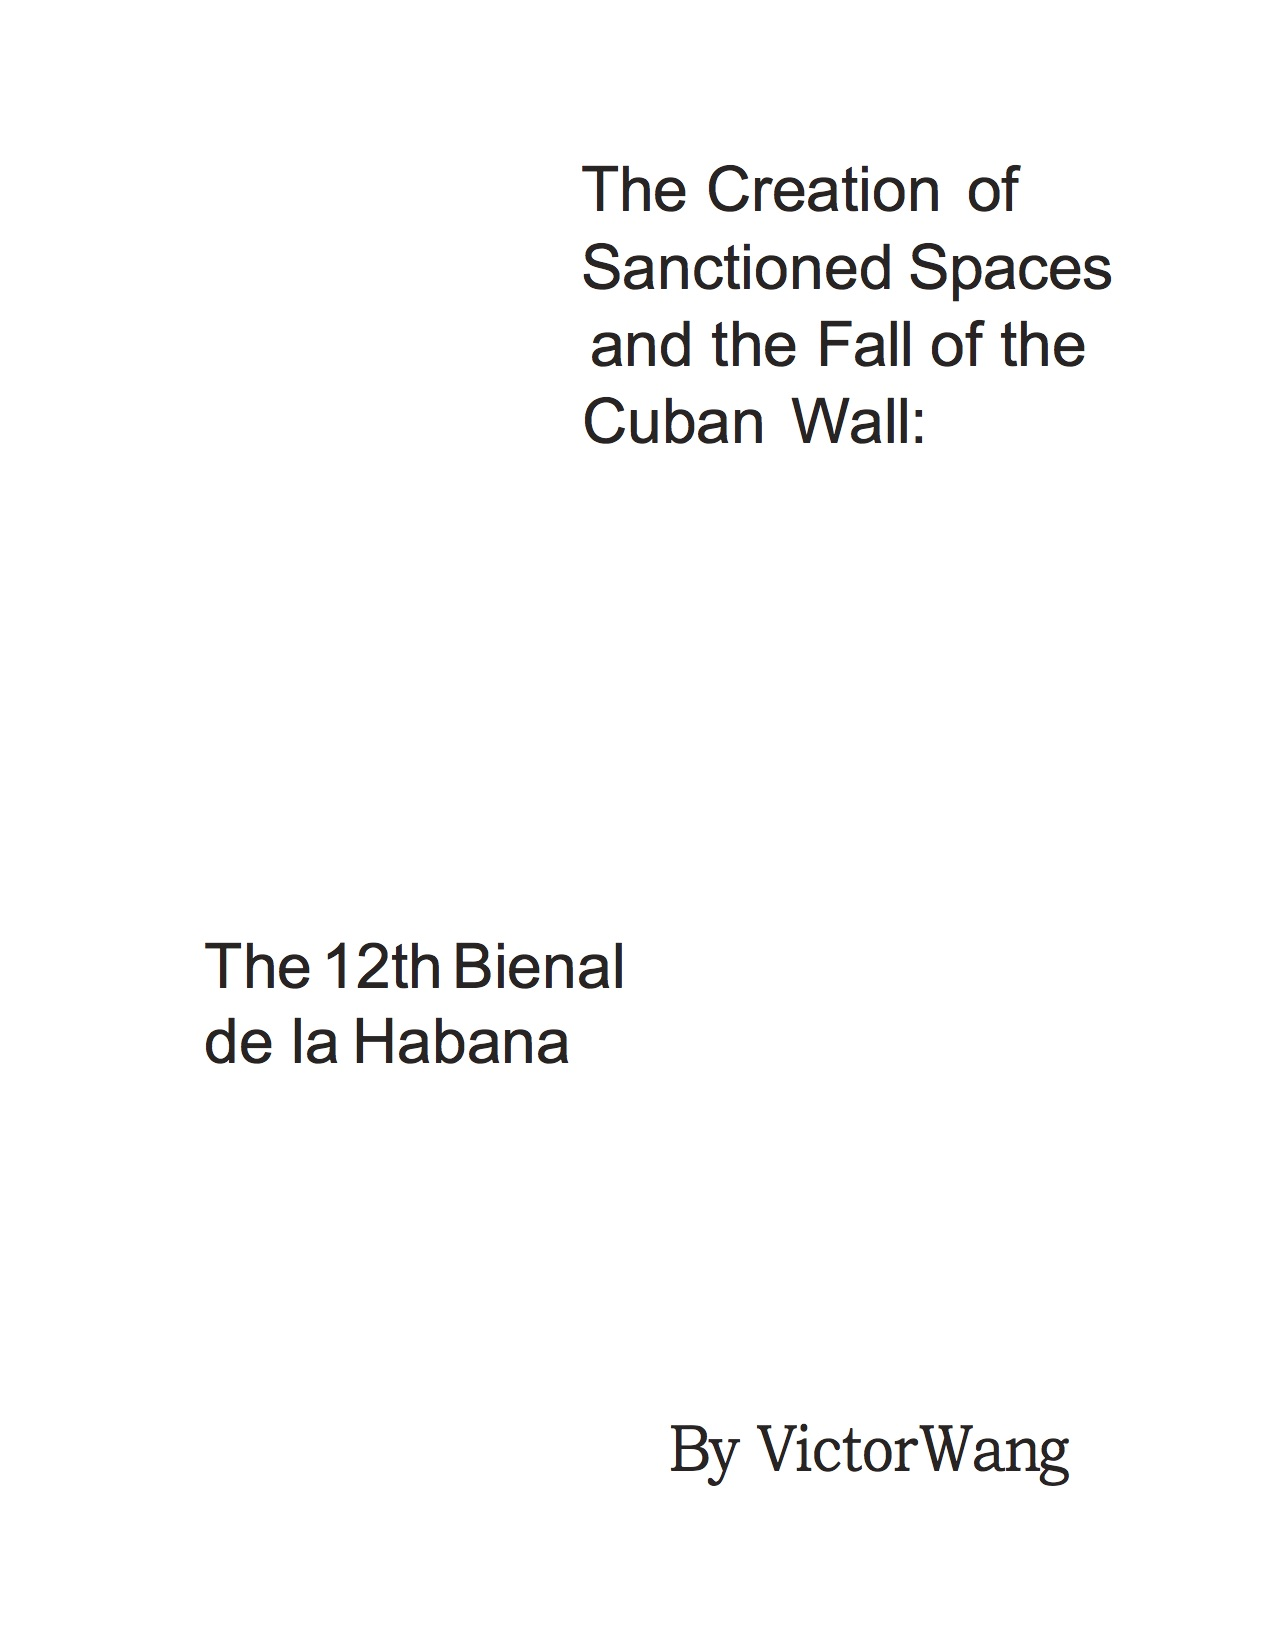 Victor Wang-The 12th Bienal de la Habana_1.jpg